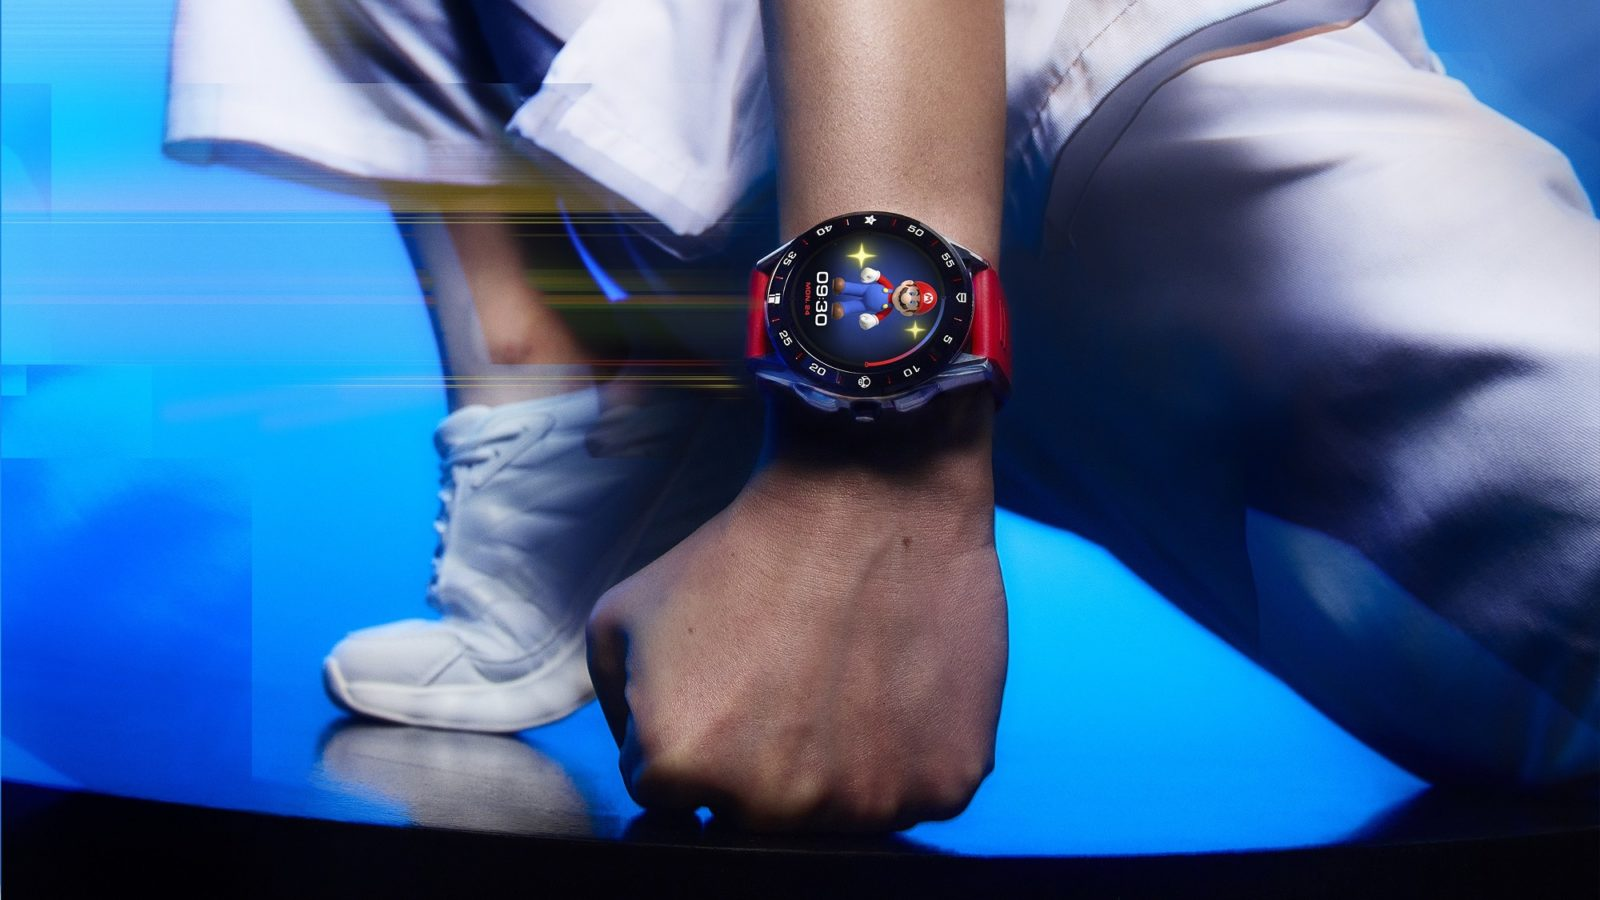 Could the TAG Heuer Super Mario collaboration be every millennial's dream?